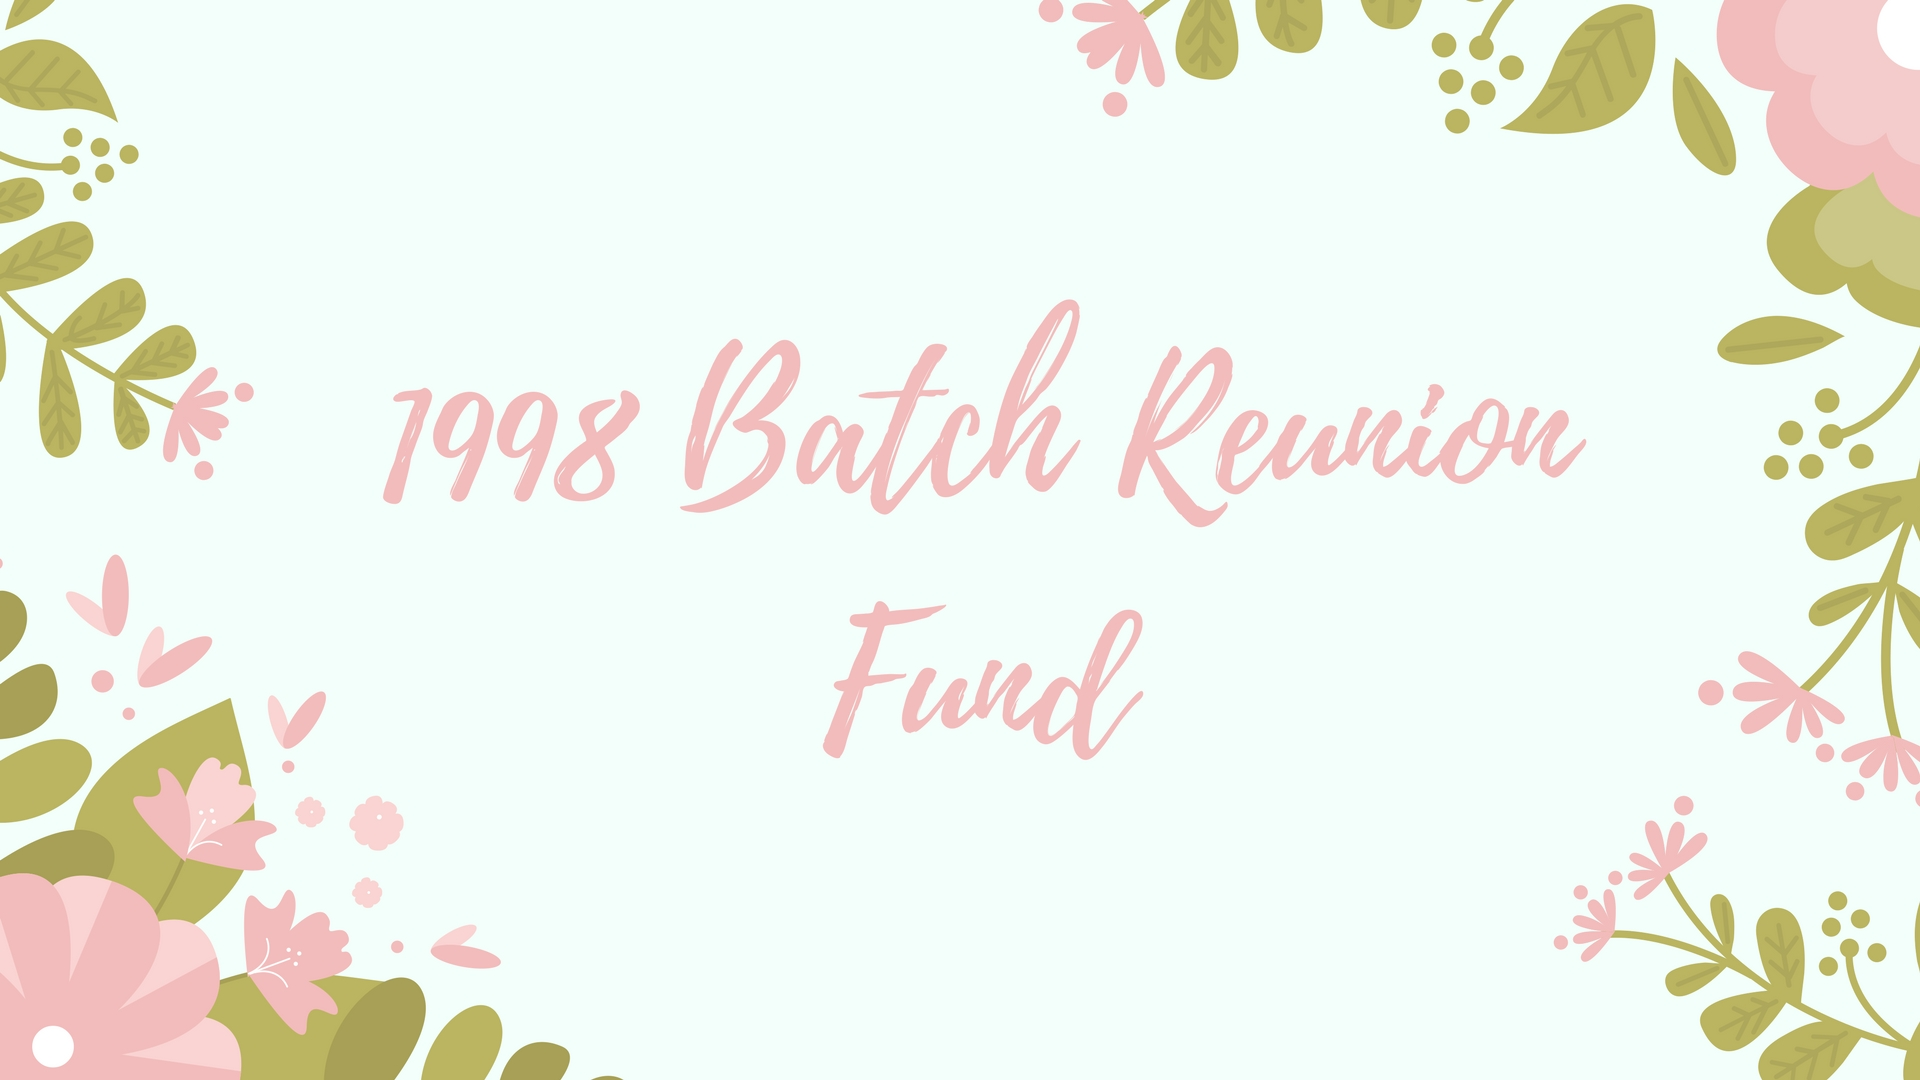 1998 Batch China Reunion Fund